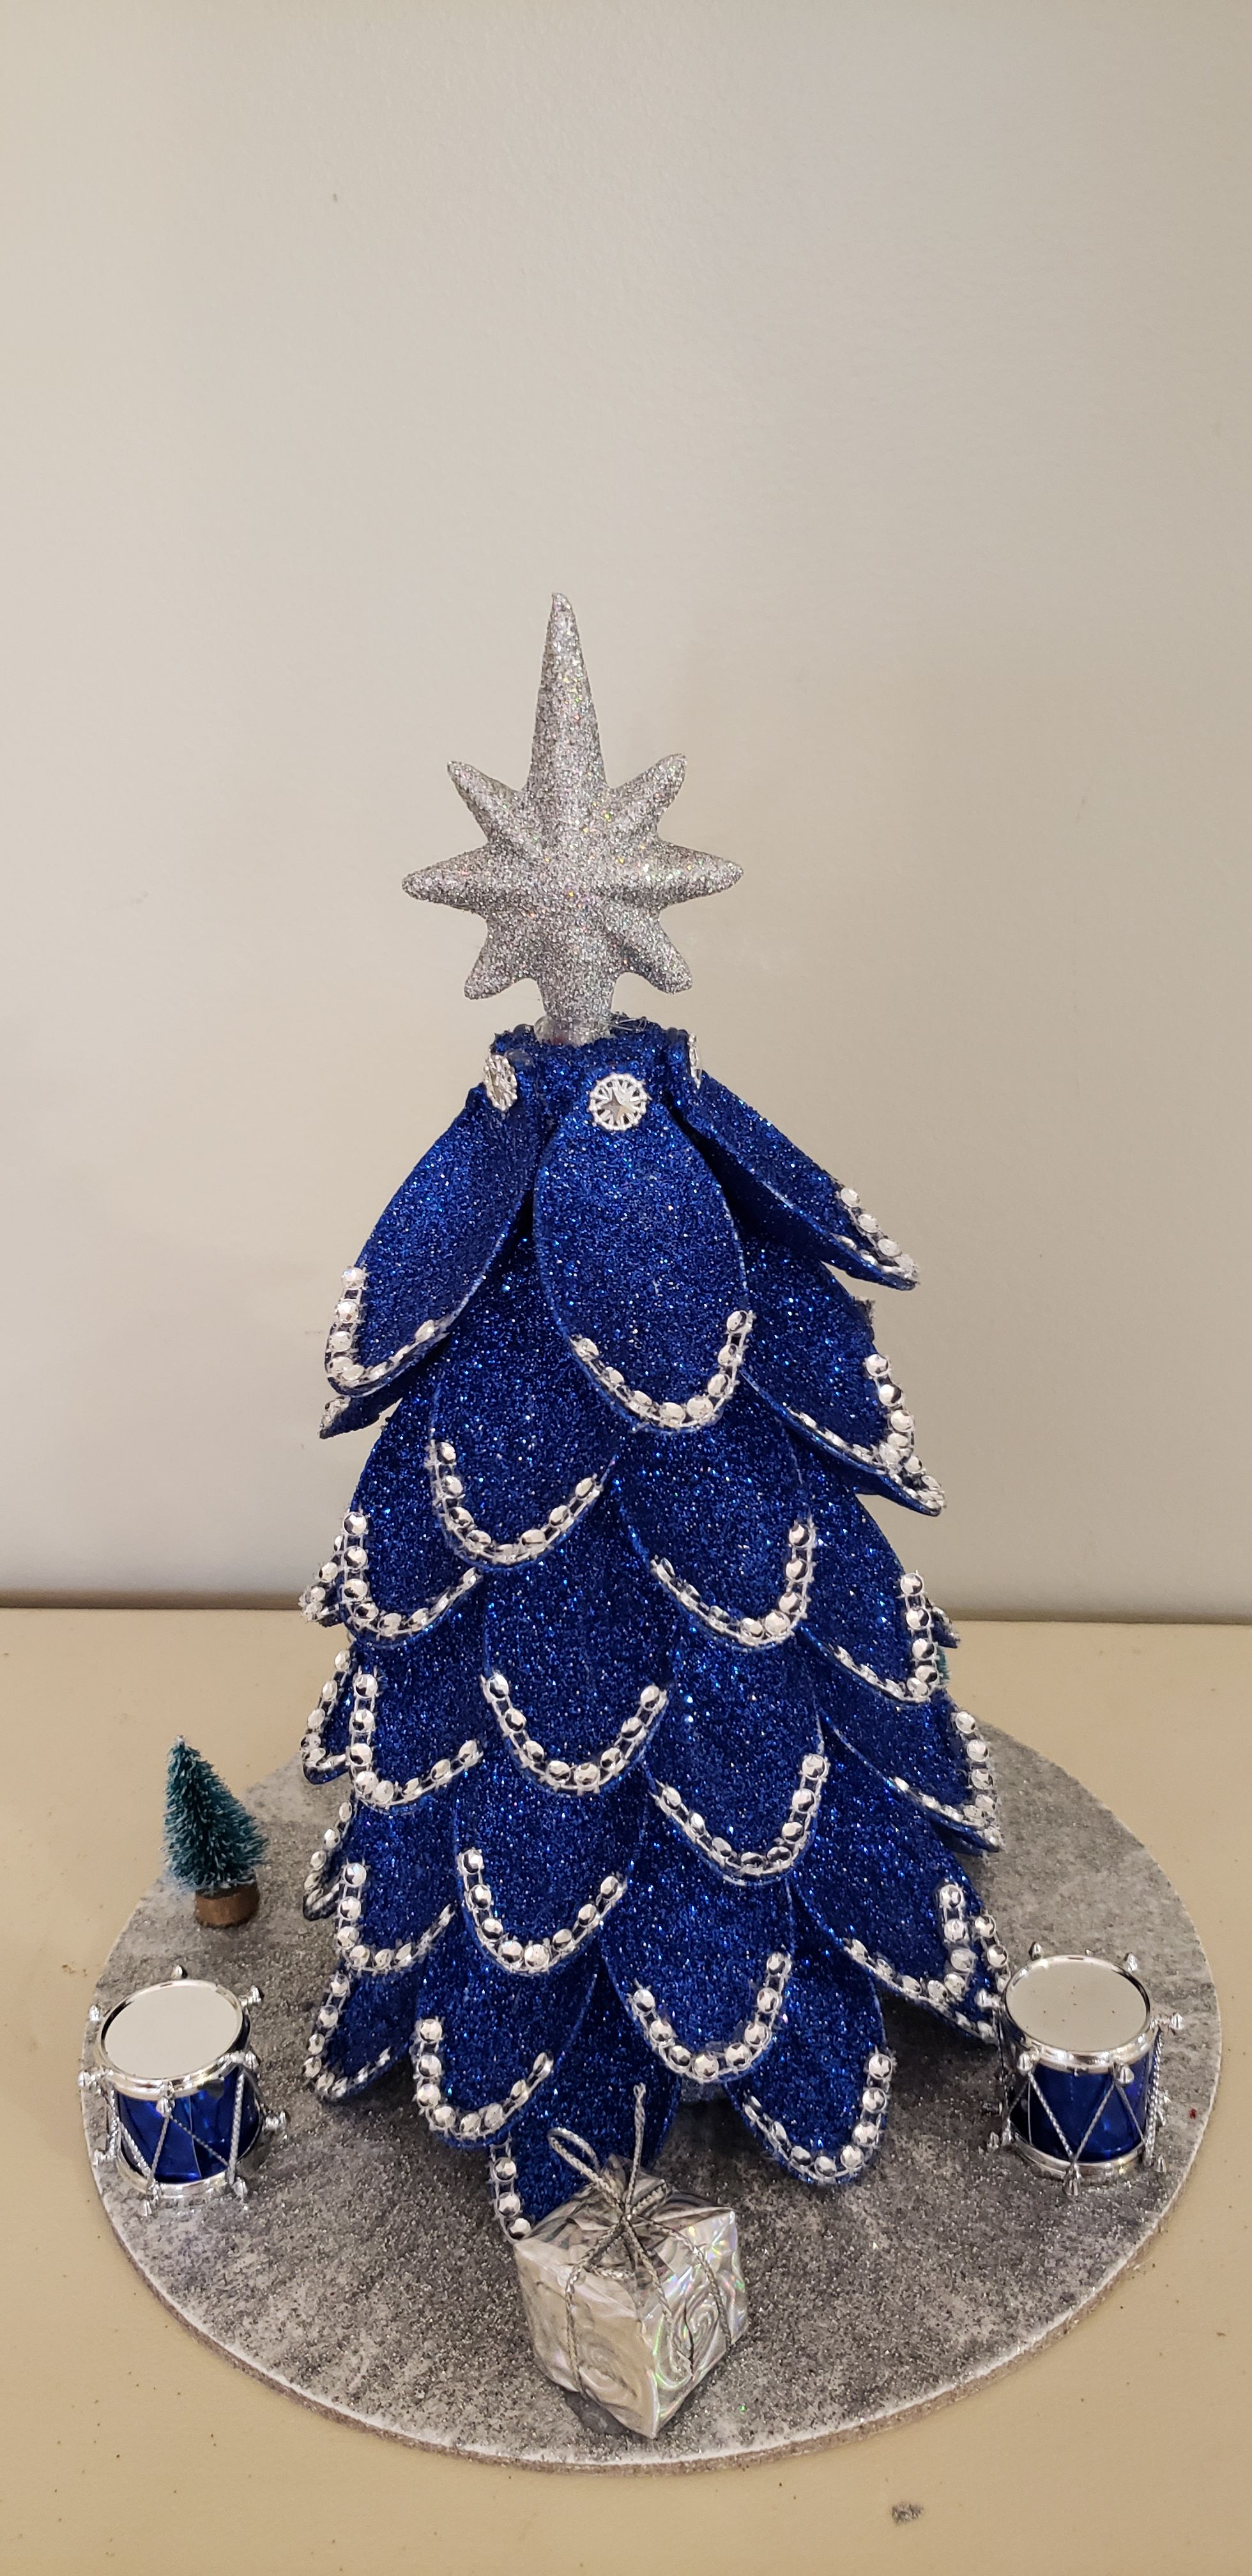 Royal Blue/Silver Christmas Tree #sunflowerchristmastree